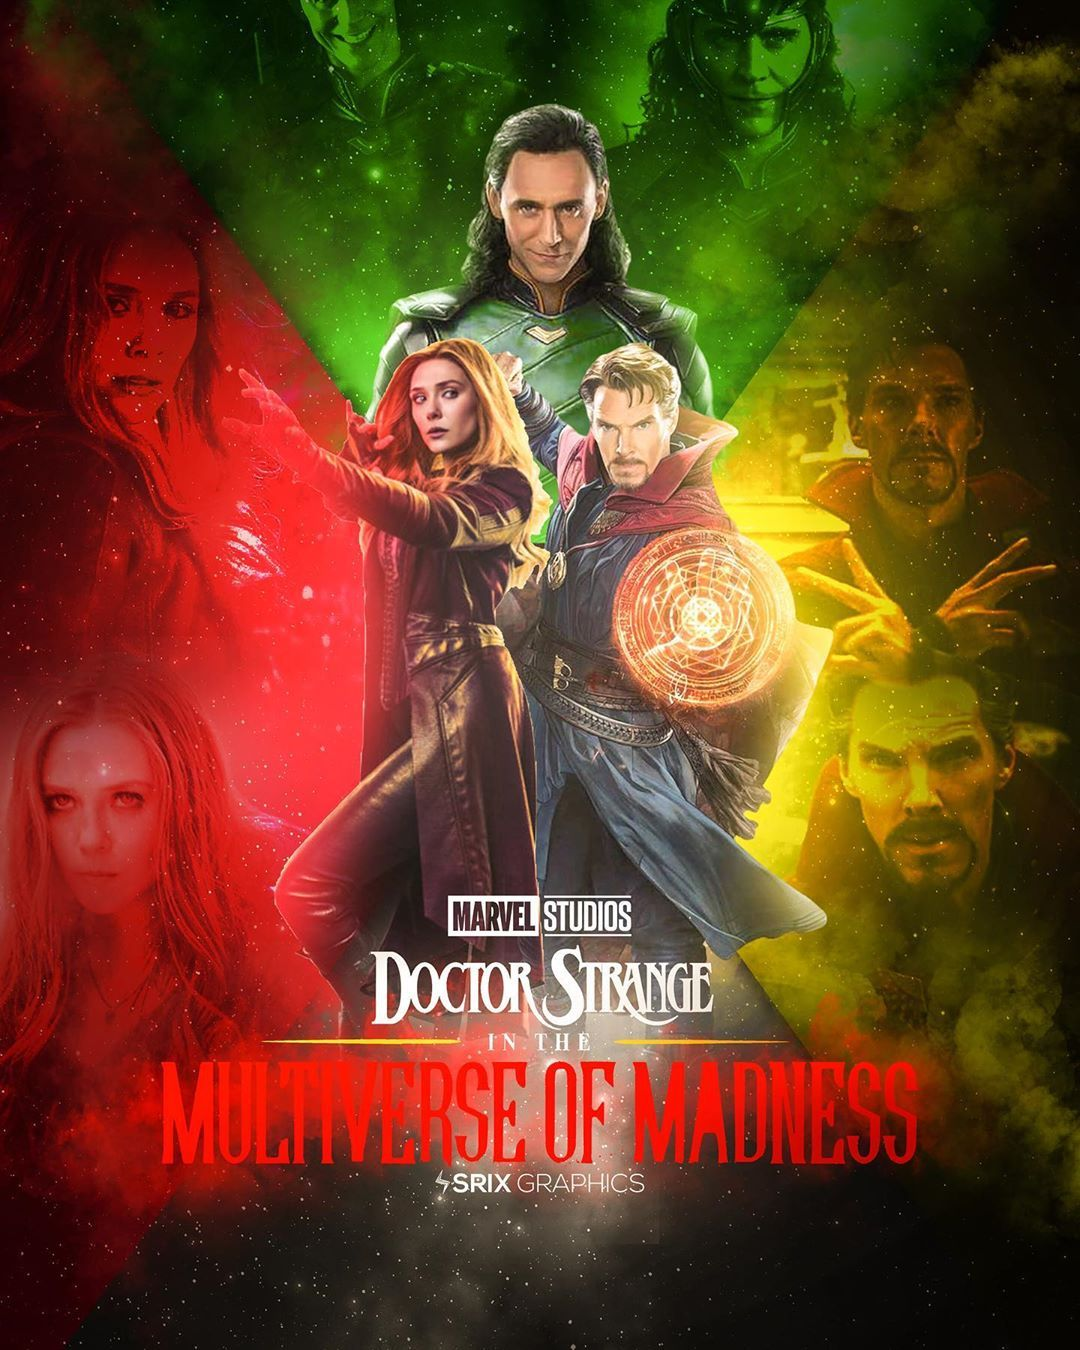 Dr. Strange in the multiverse of madness story